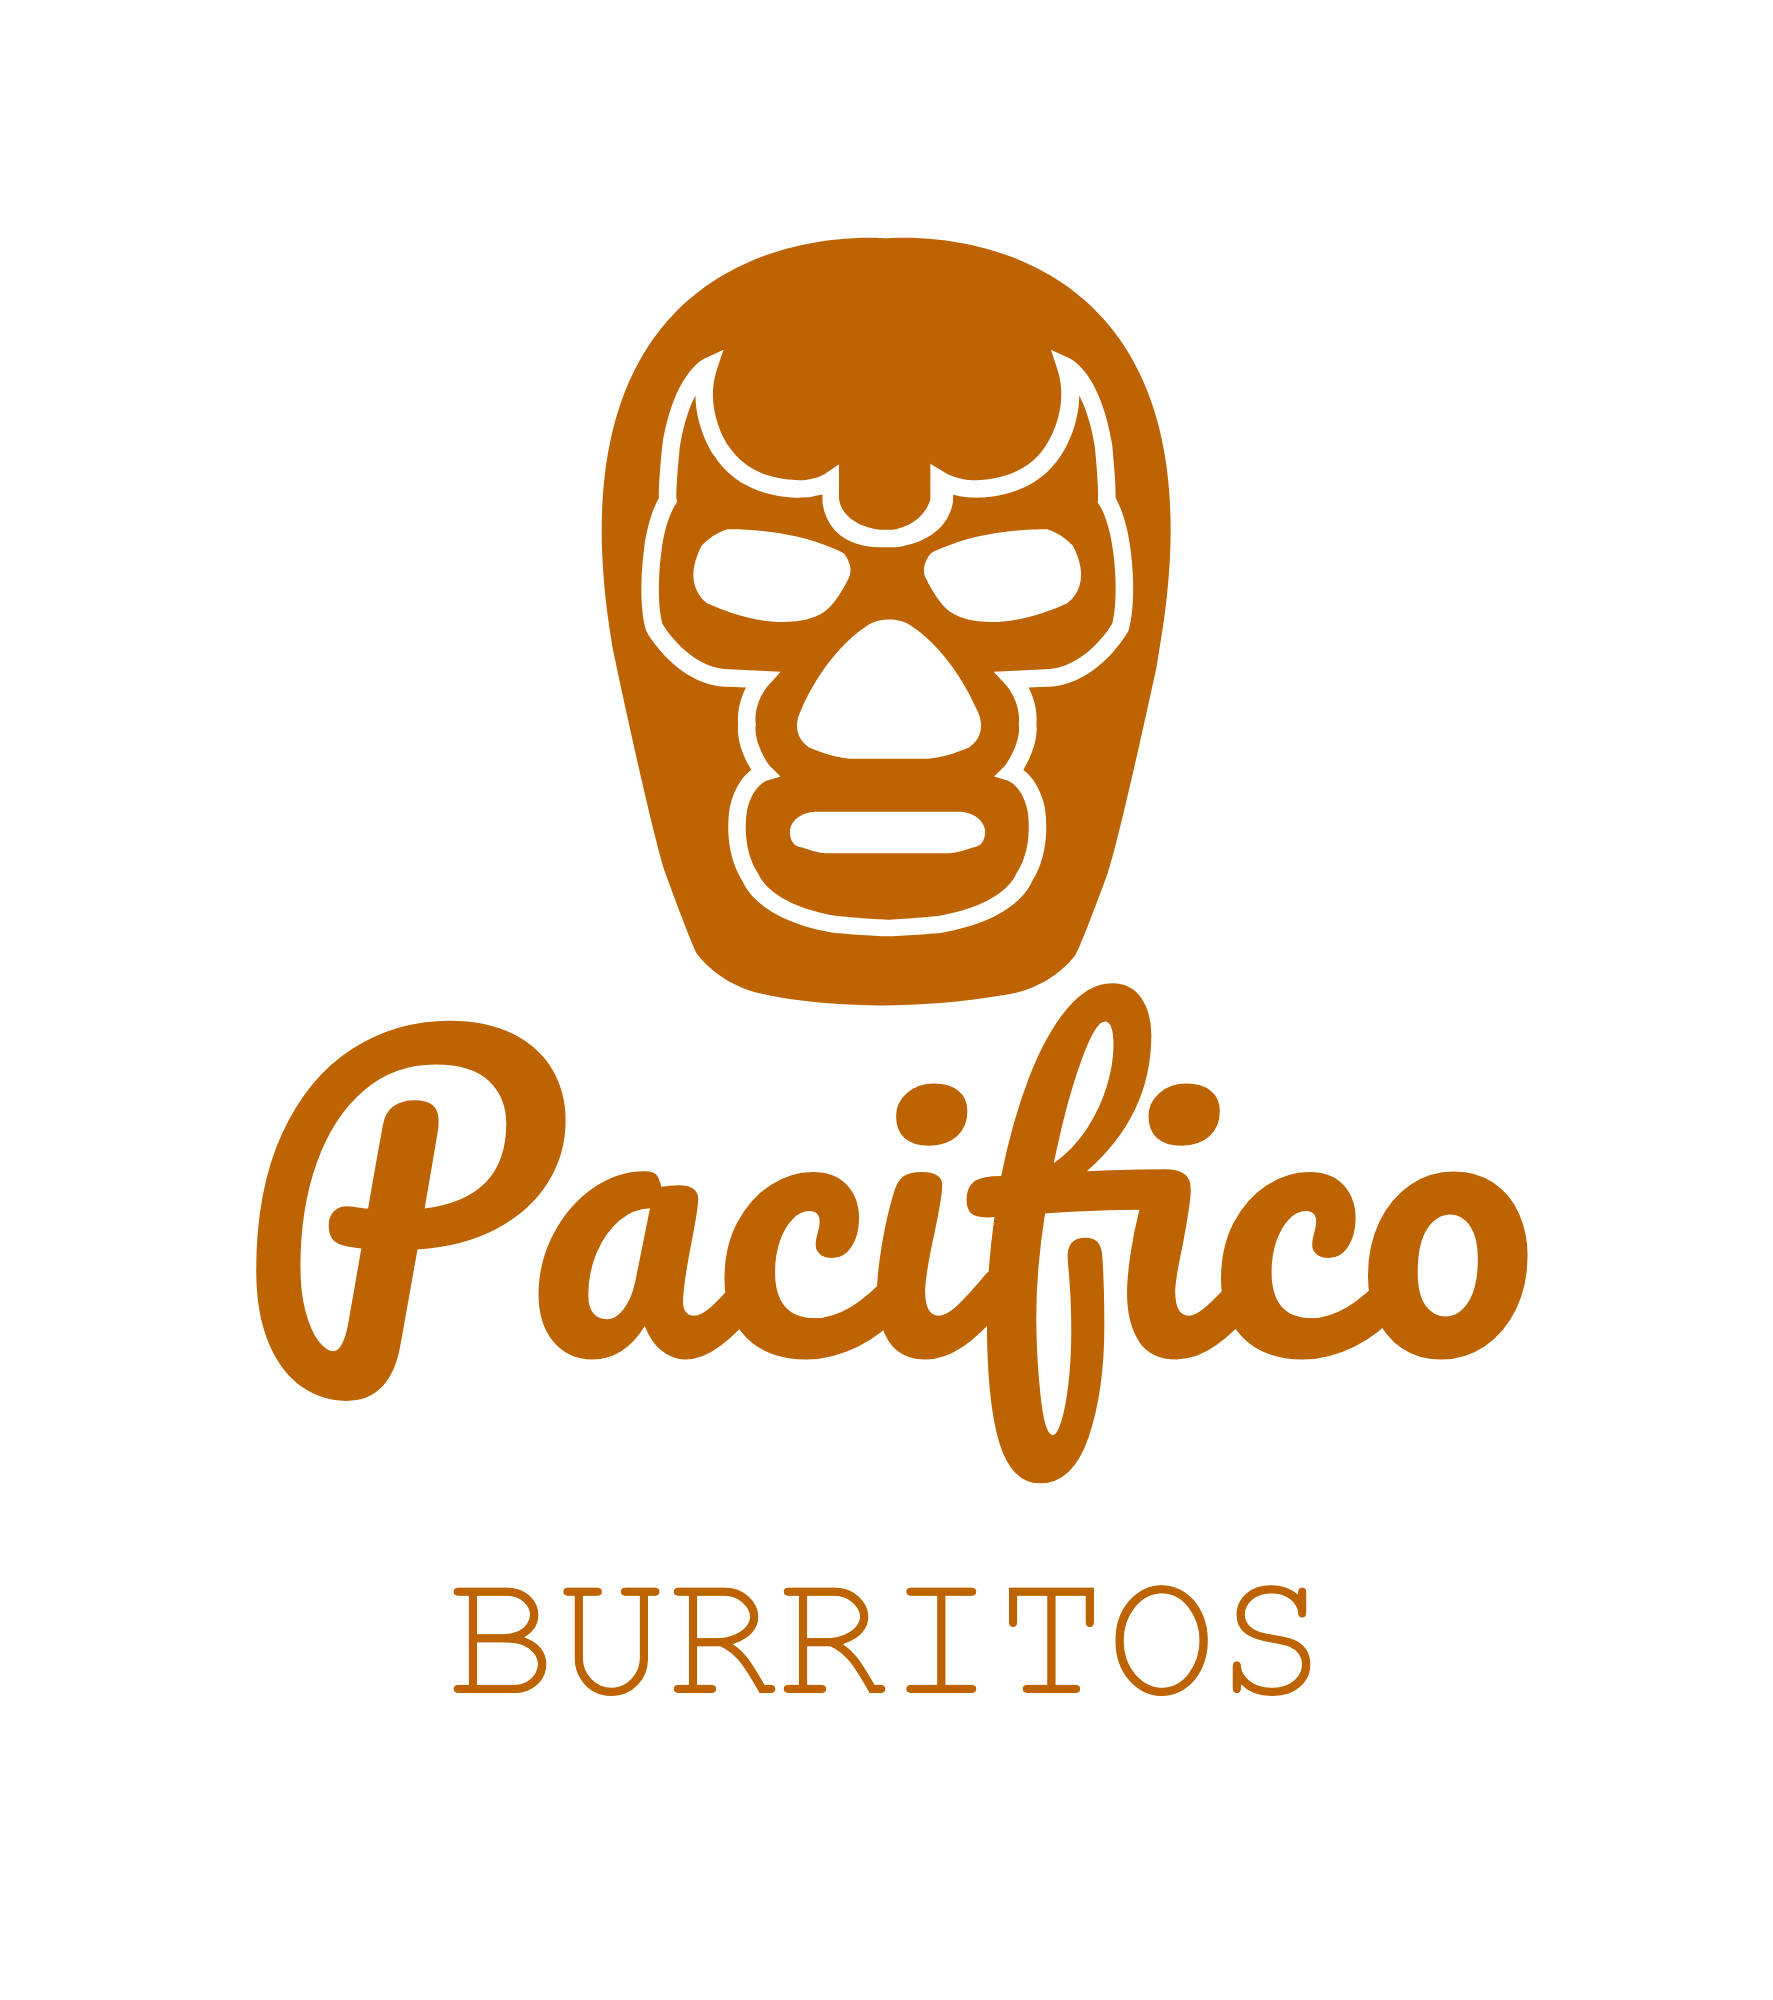 Pacifico-logo.png